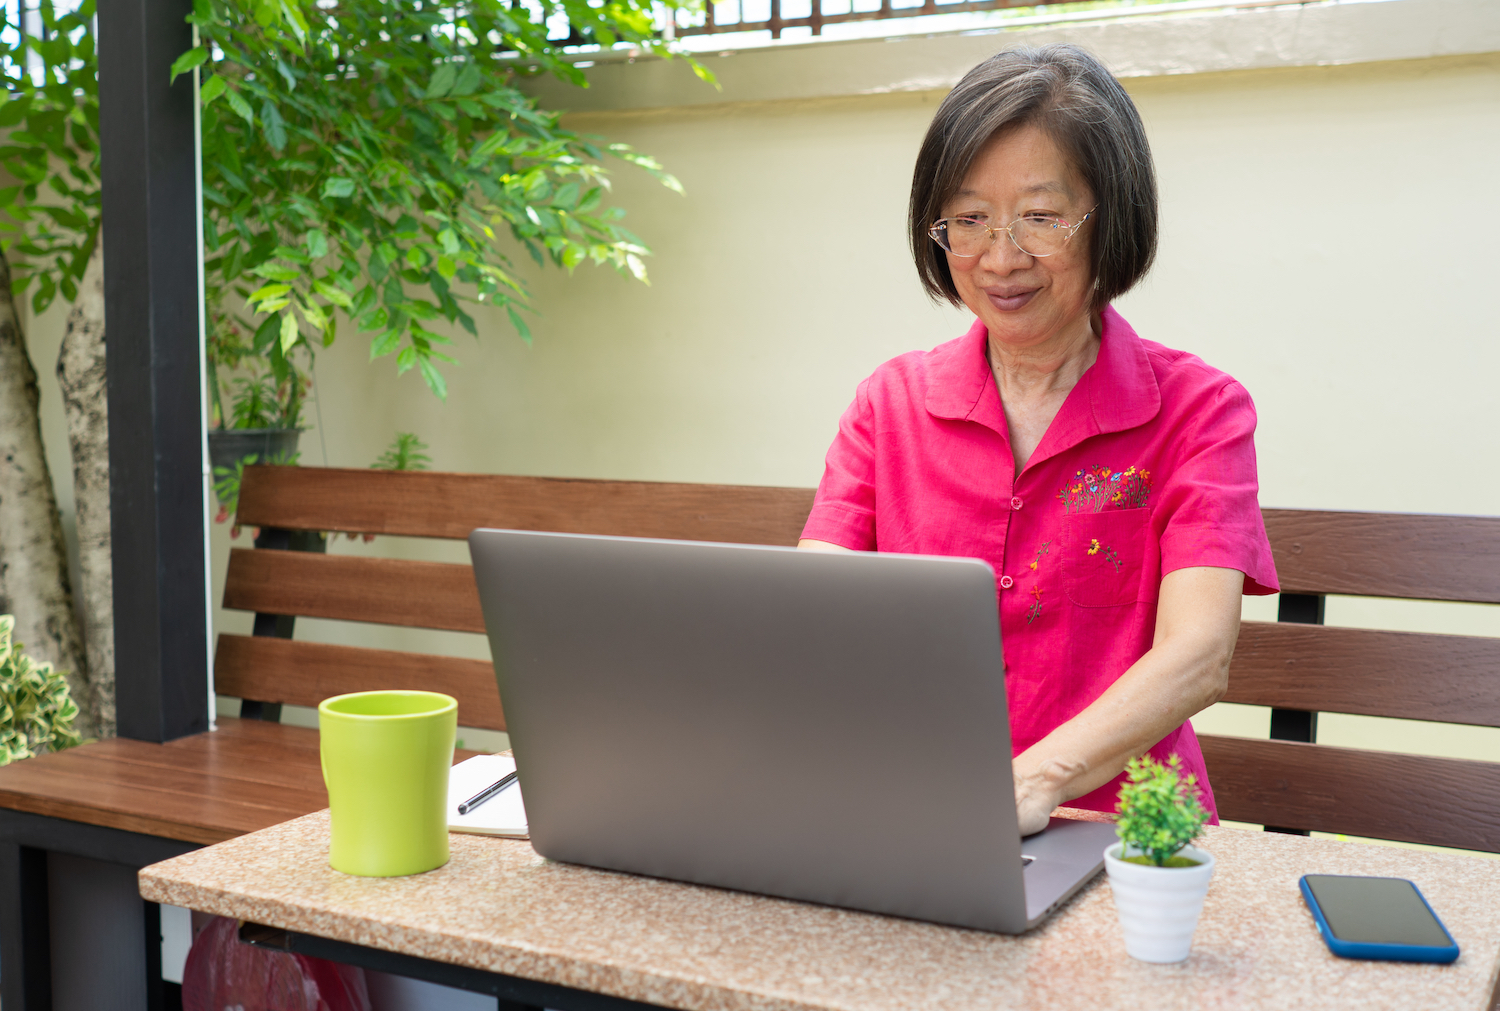 An Asian woman sitting at a computer, writing emails